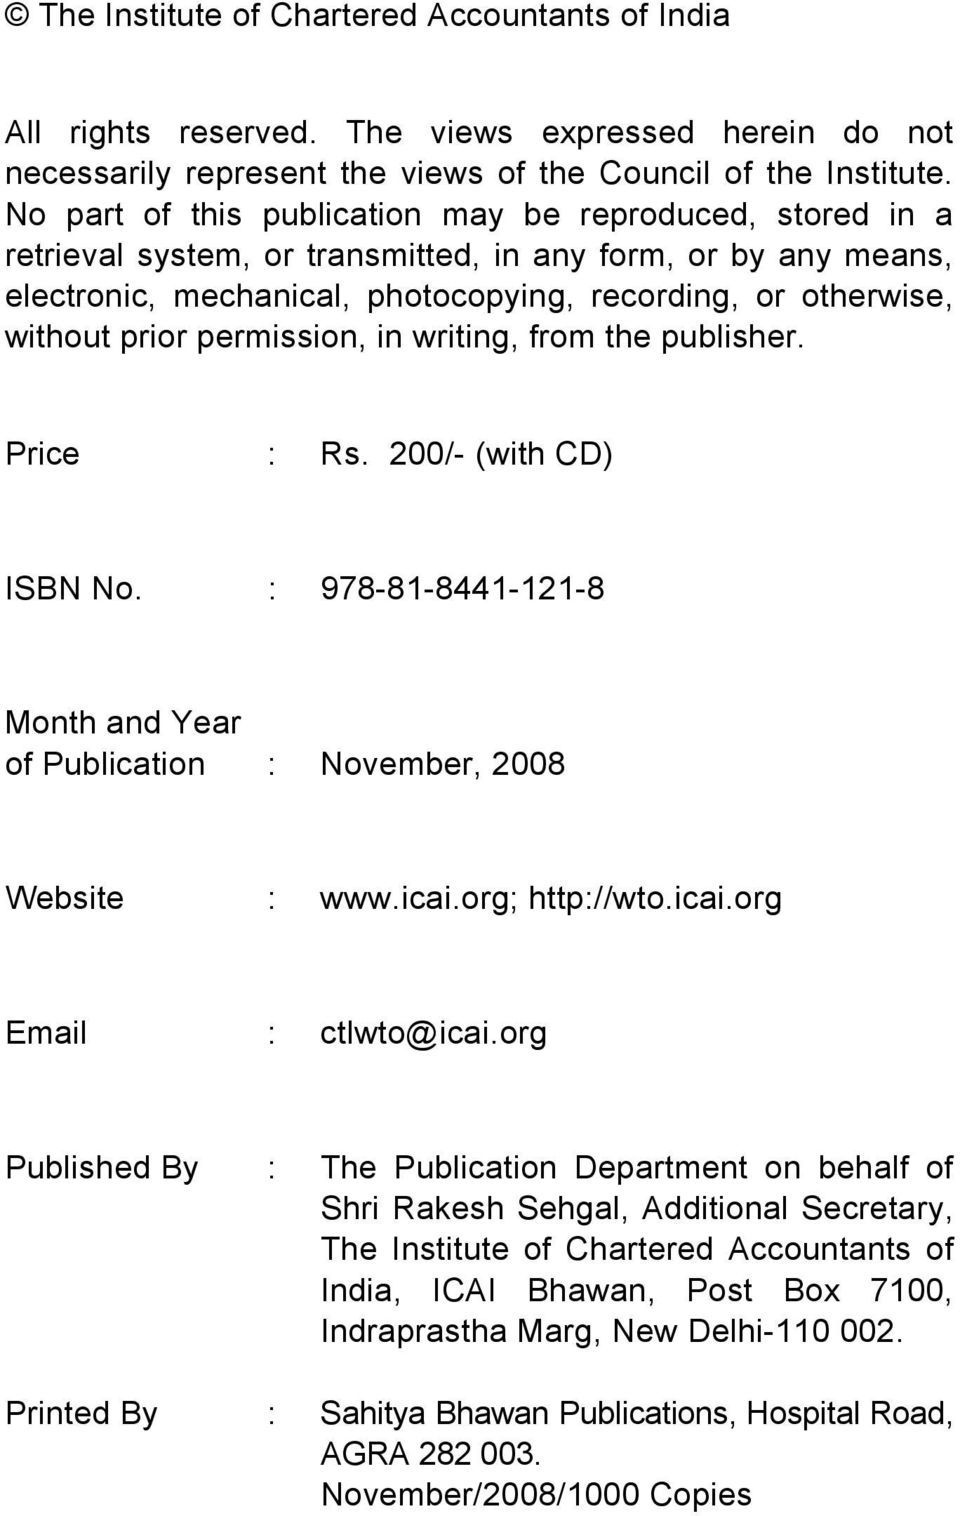 permission, in writing, from the publisher. Price : Rs. 200/- (with CD) ISBN No. : 978-81-8441-121-8 Month and Year of Publication : November, 2008 Website : www.icai.org; http://wto.icai.org Email : ctlwto@icai.